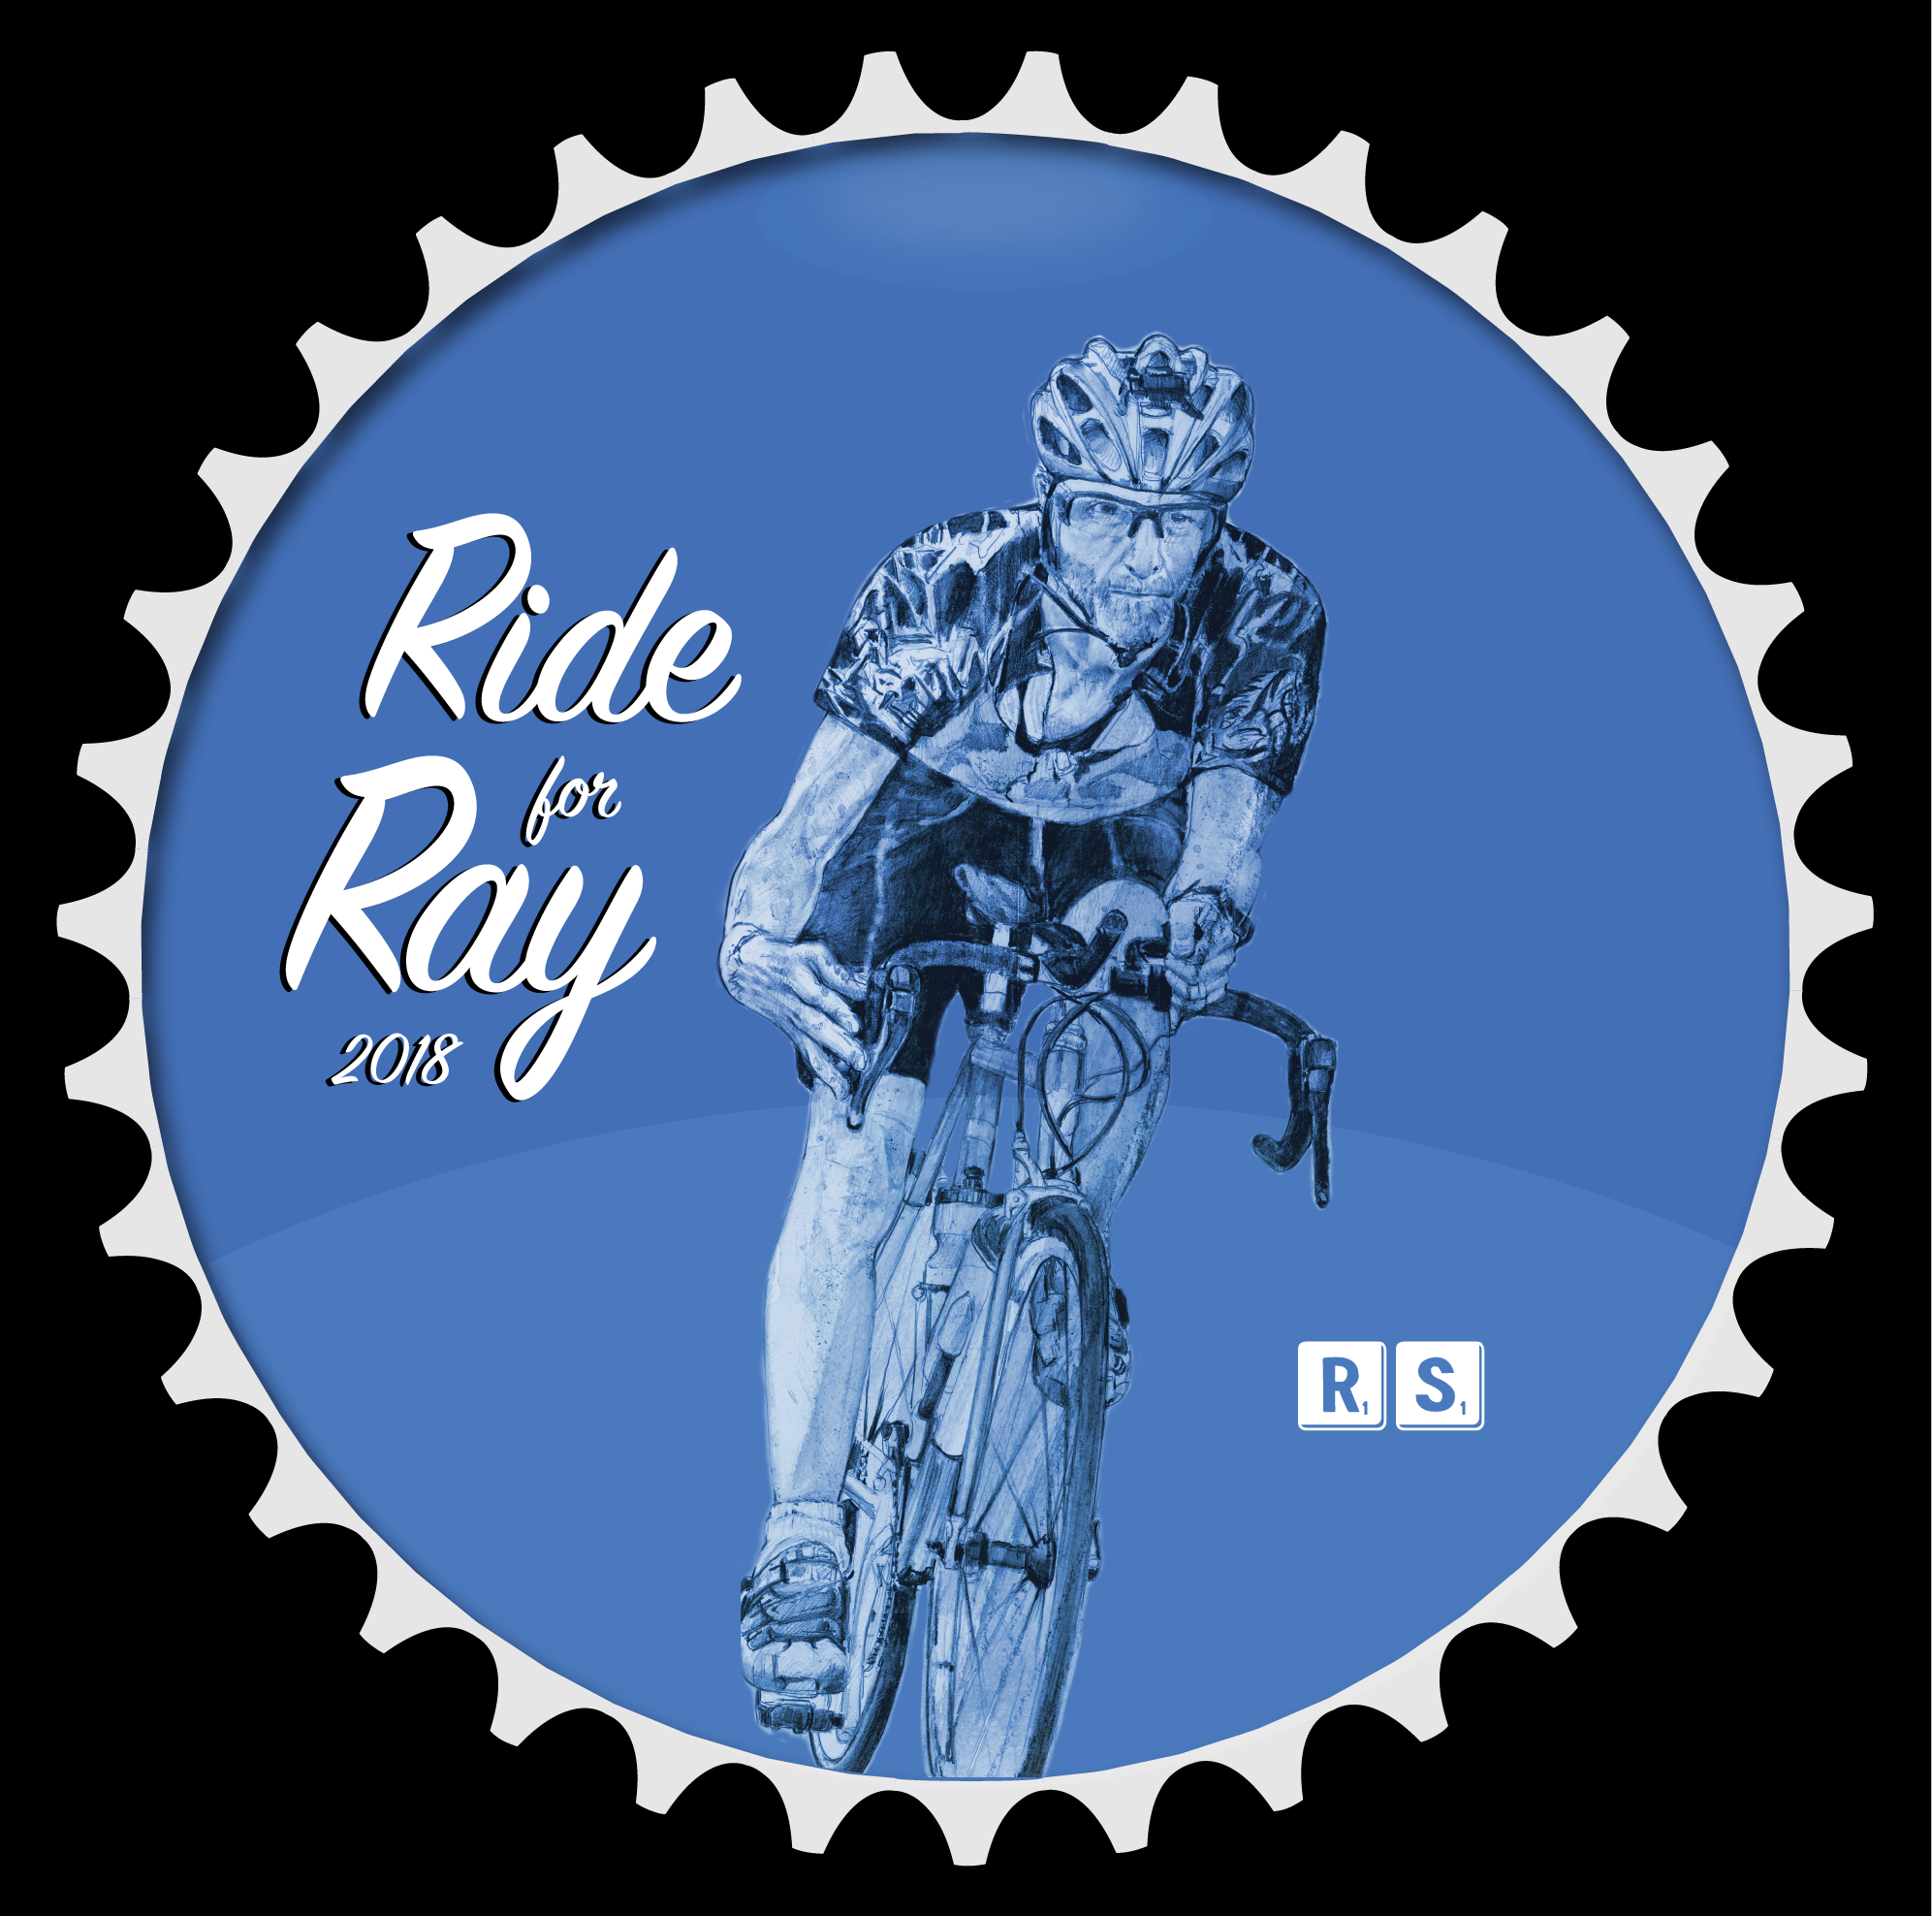 Ride for Ray logo